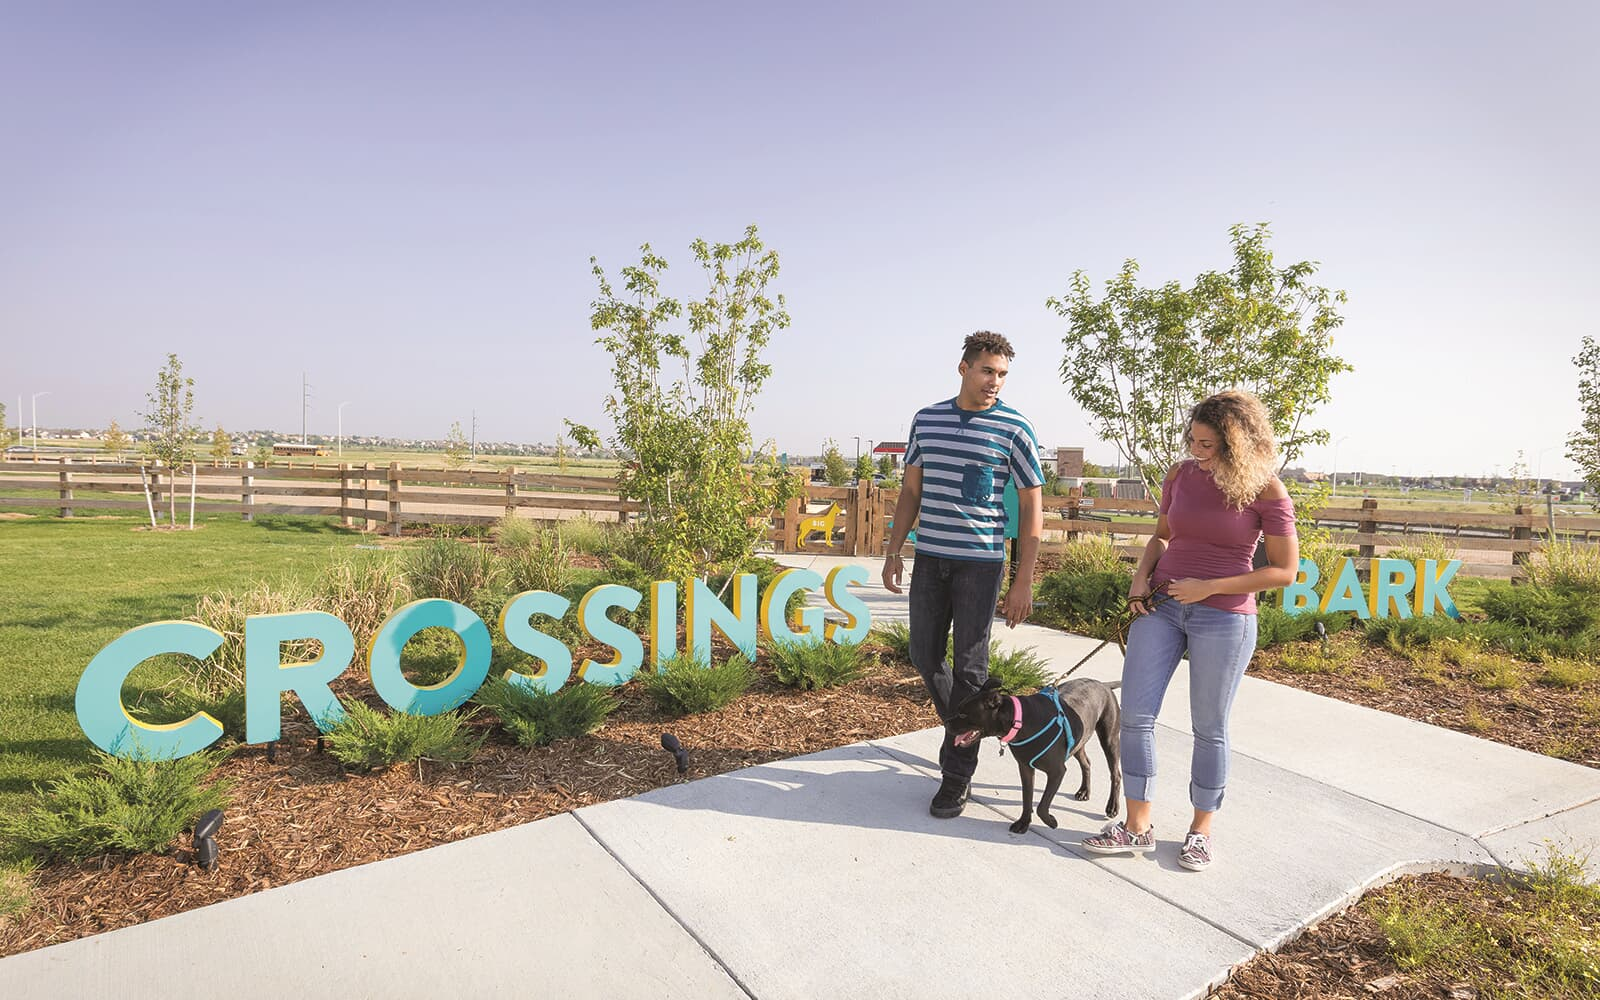 Lifestyle-Crossings-Bark-Couple-Brighton-Crossings-Denver-Colorado